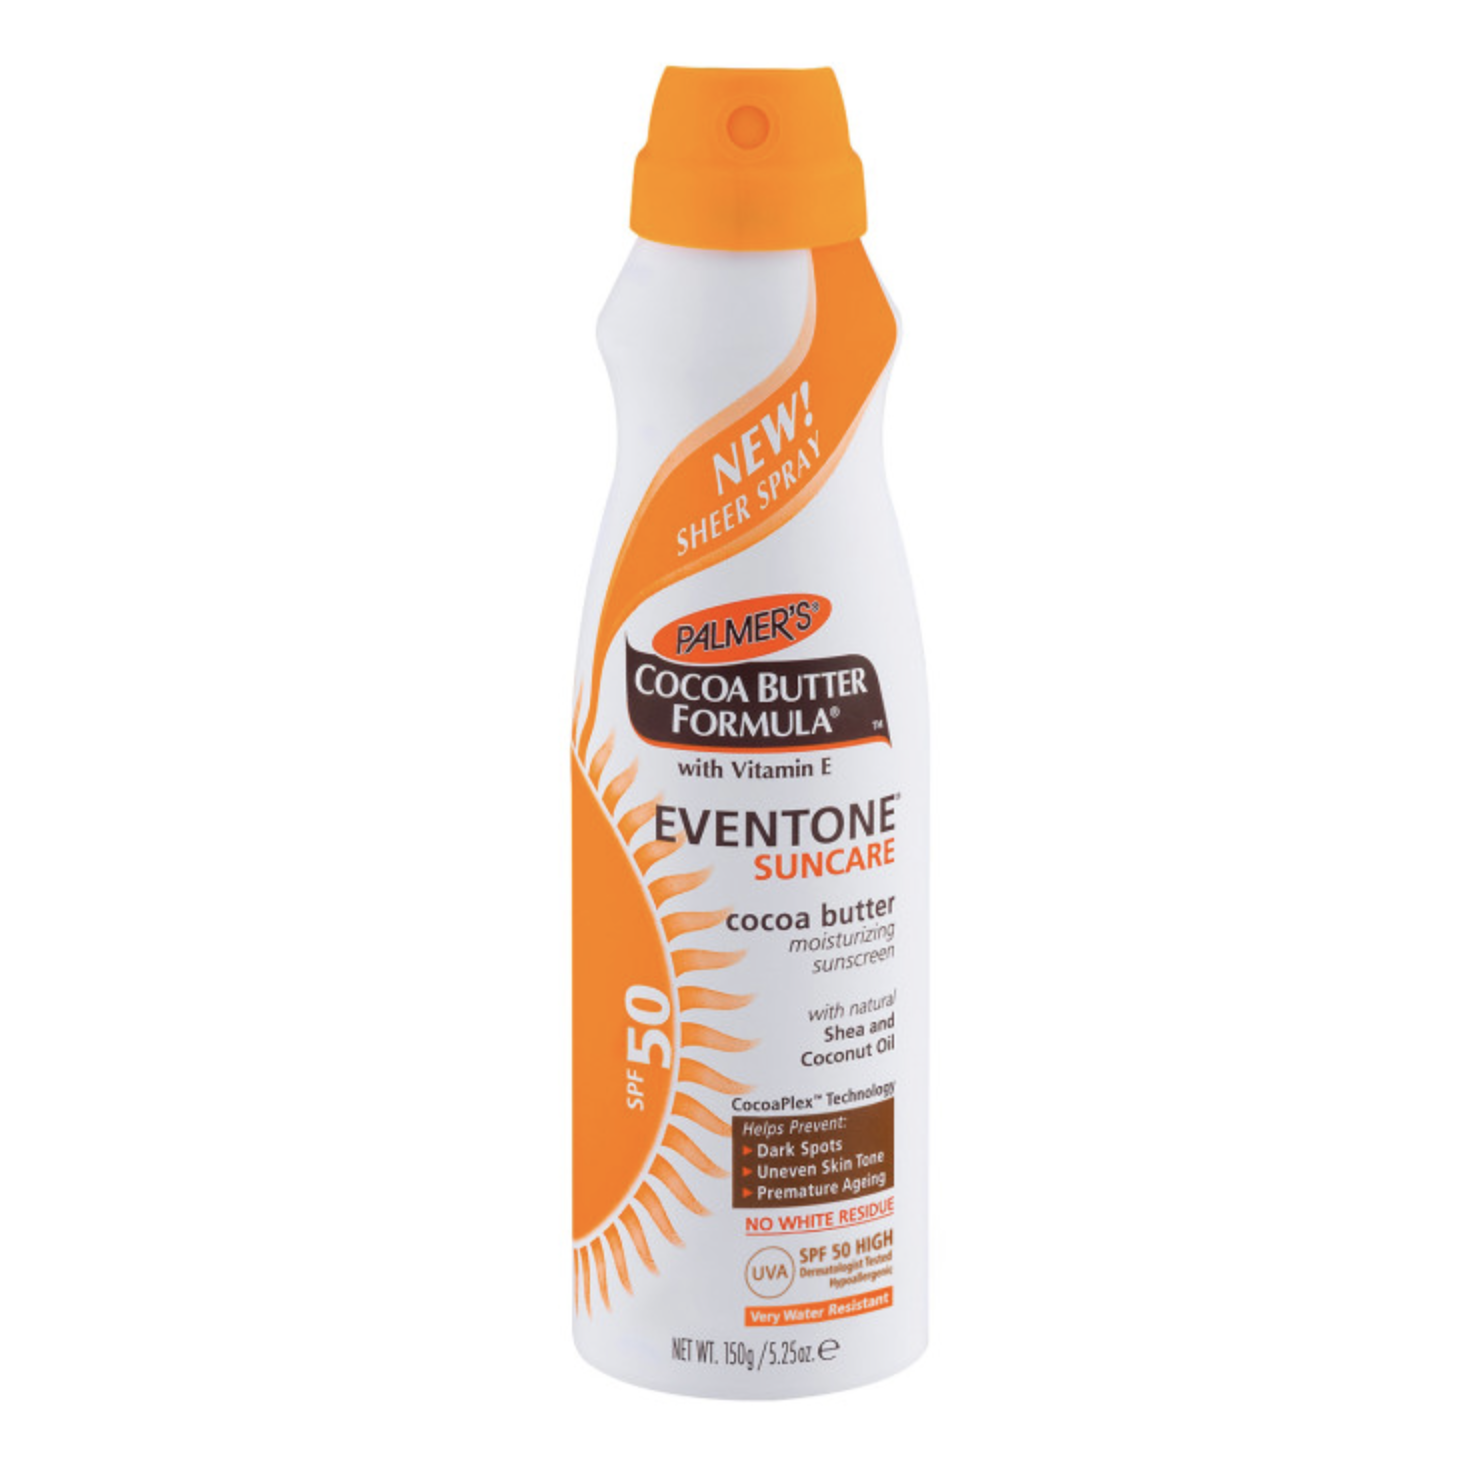 FOR MUM & DAD - Palmers Cocoa Butter Formula Suncream